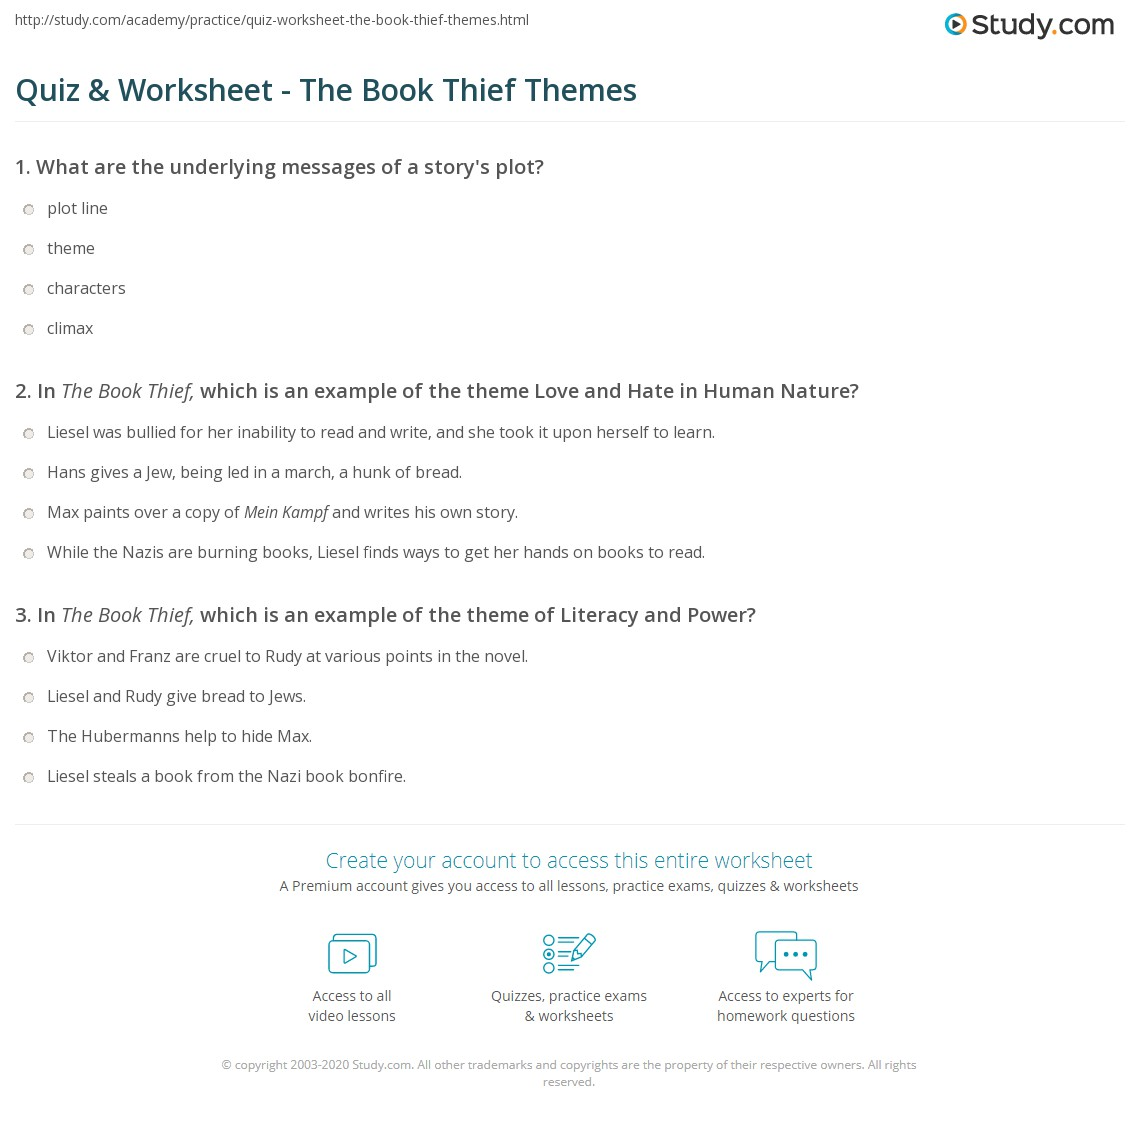 Quiz Worksheet The Book Thief Themes Study